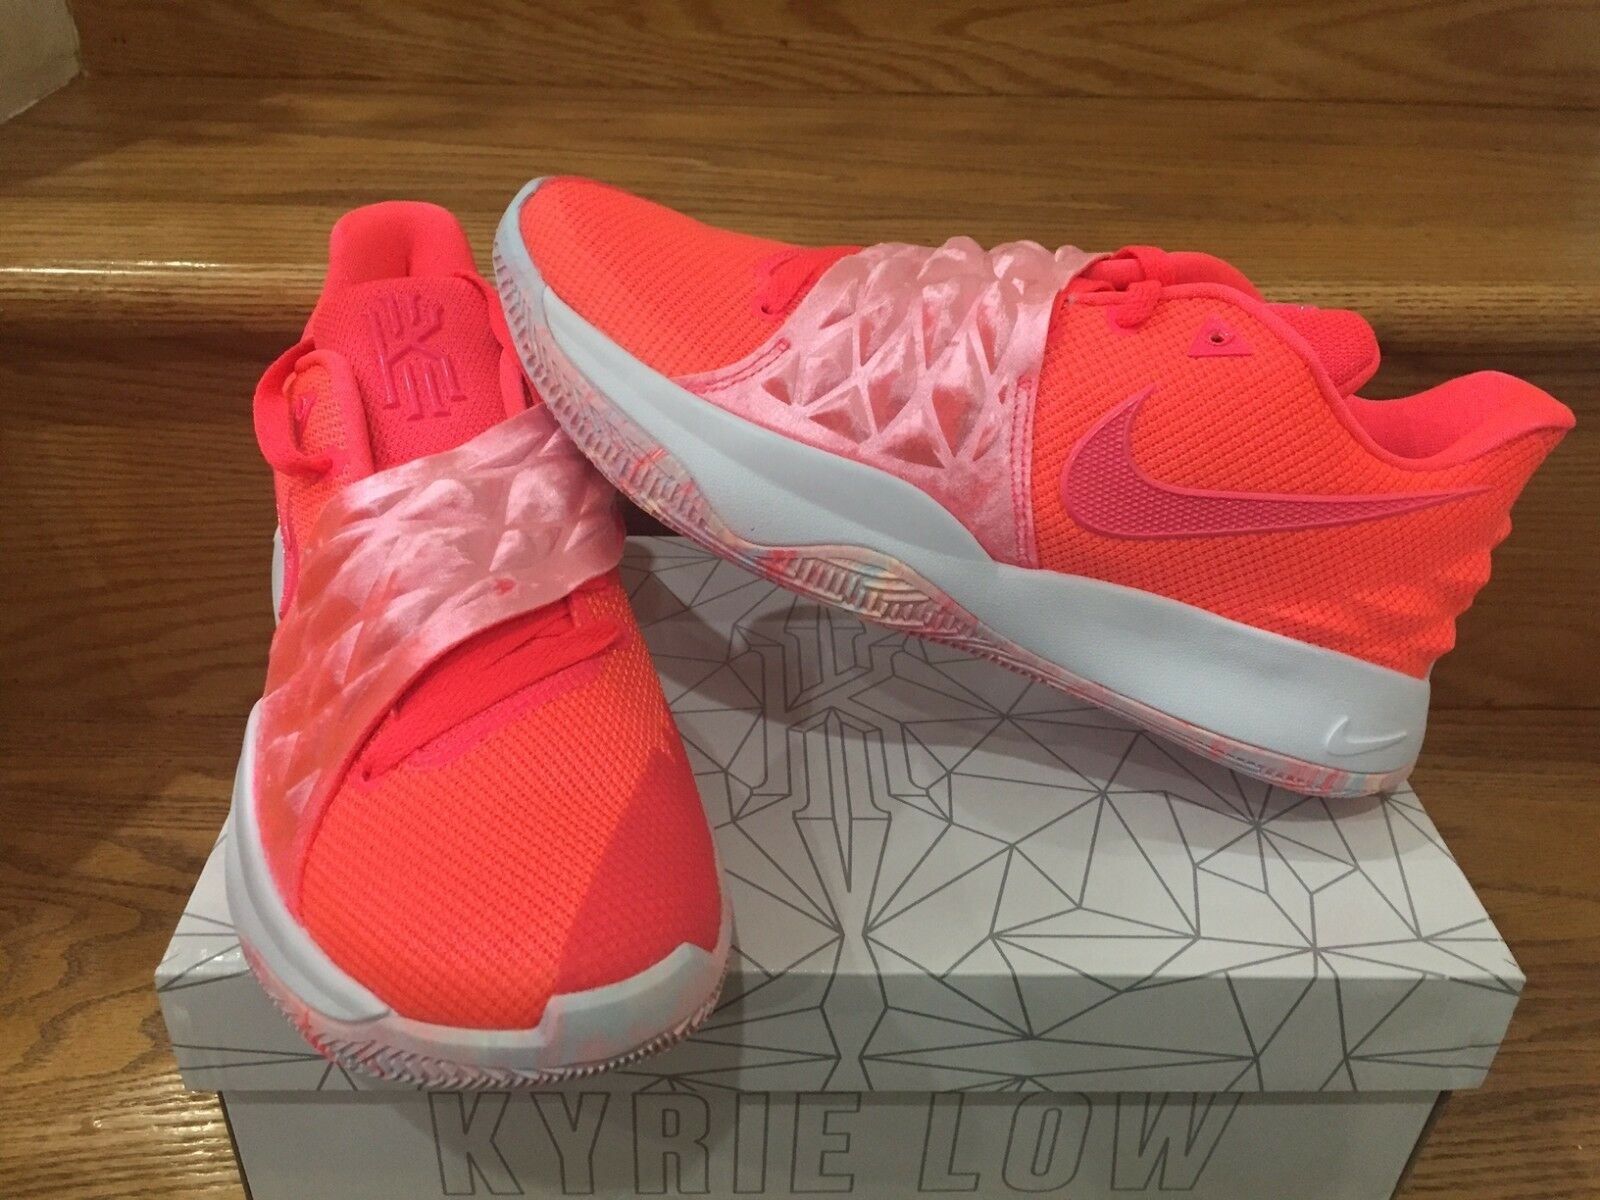 Nike Kyrie Low 1 EP Irving Hot Punch Red Pink AO8980-600 Size 8-13 New DS